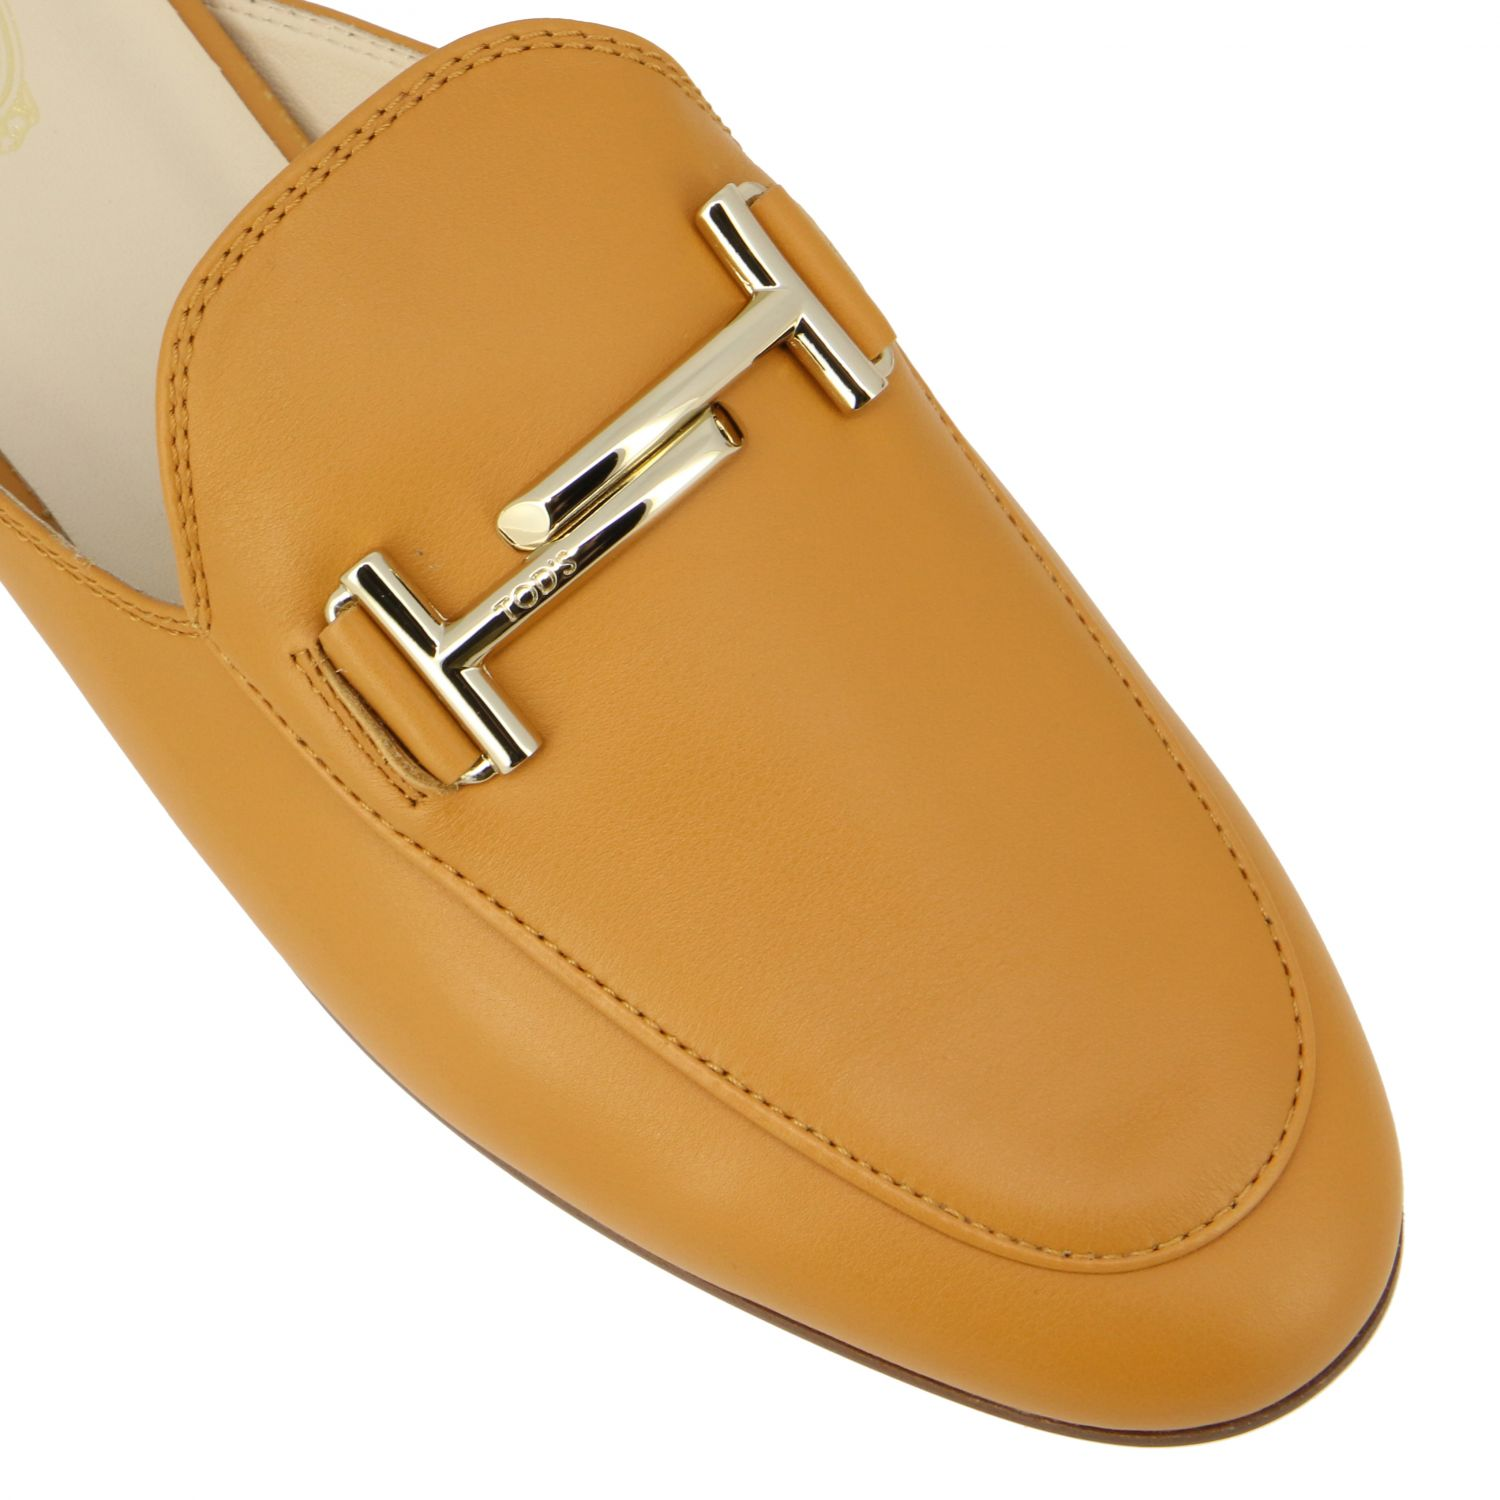 Sabot Tod's in pelle liscia con double T cuoio 4